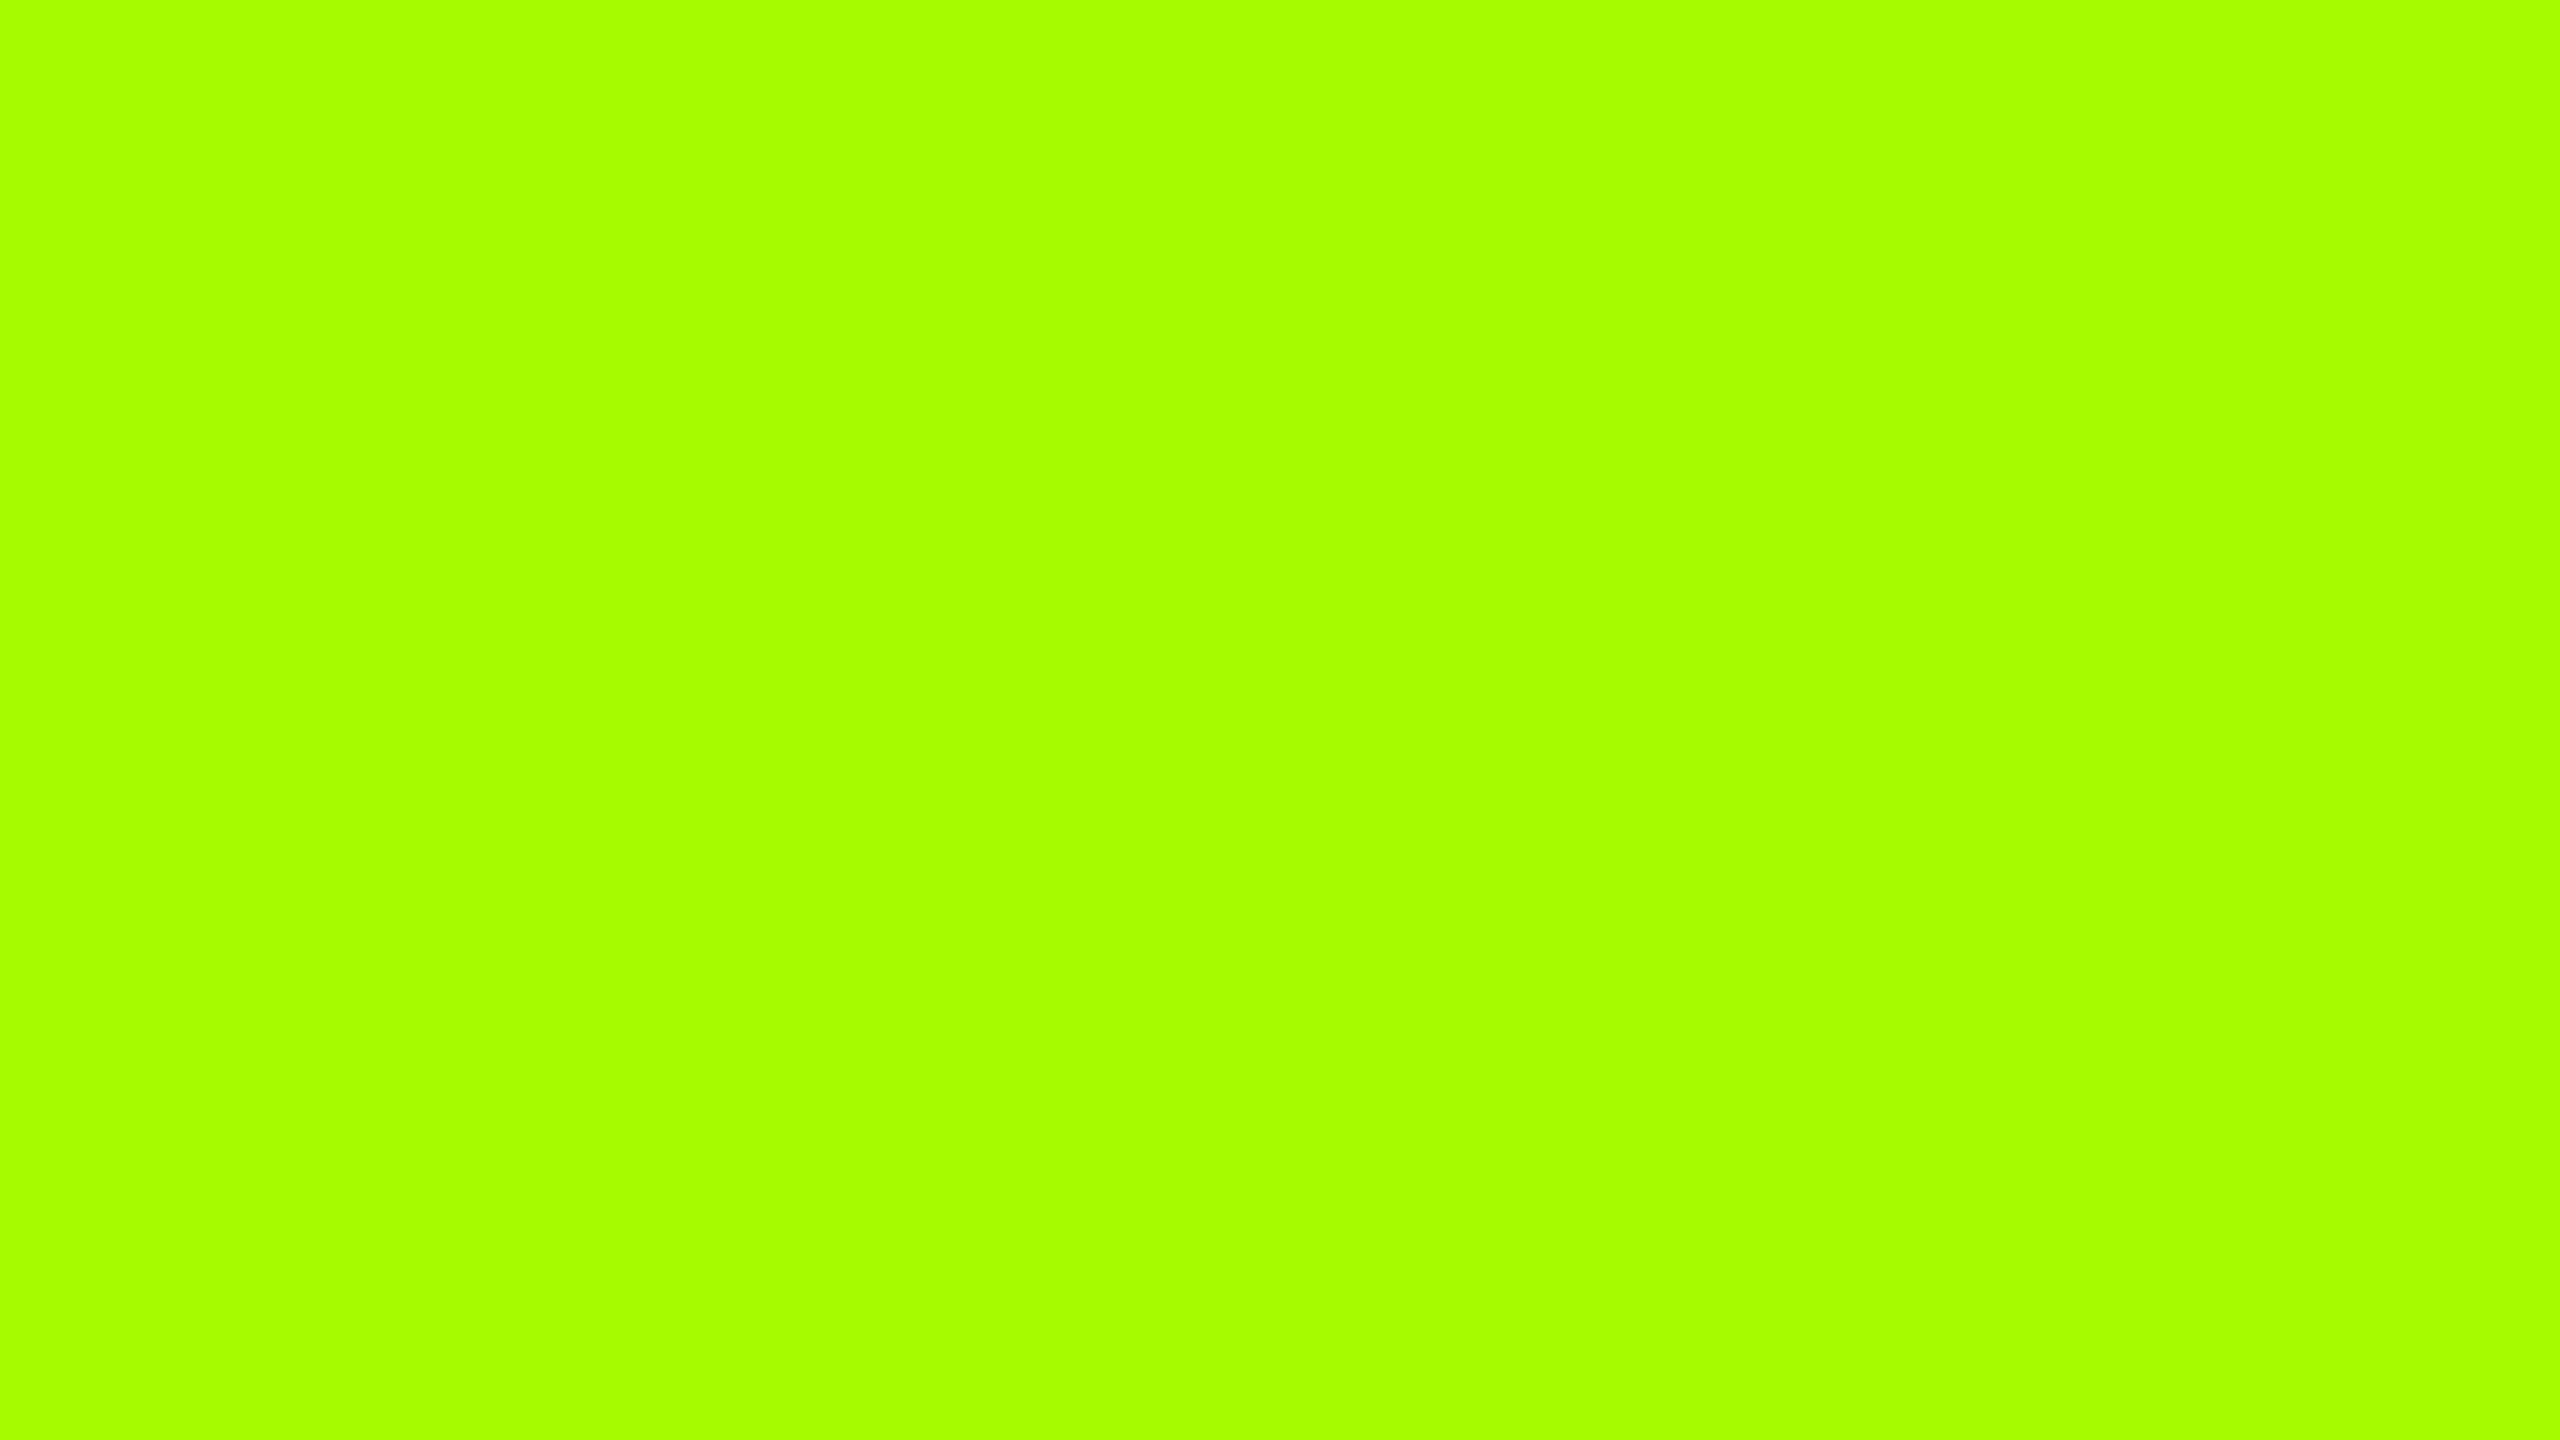 2560x1440 Spring Bud Solid Color Background